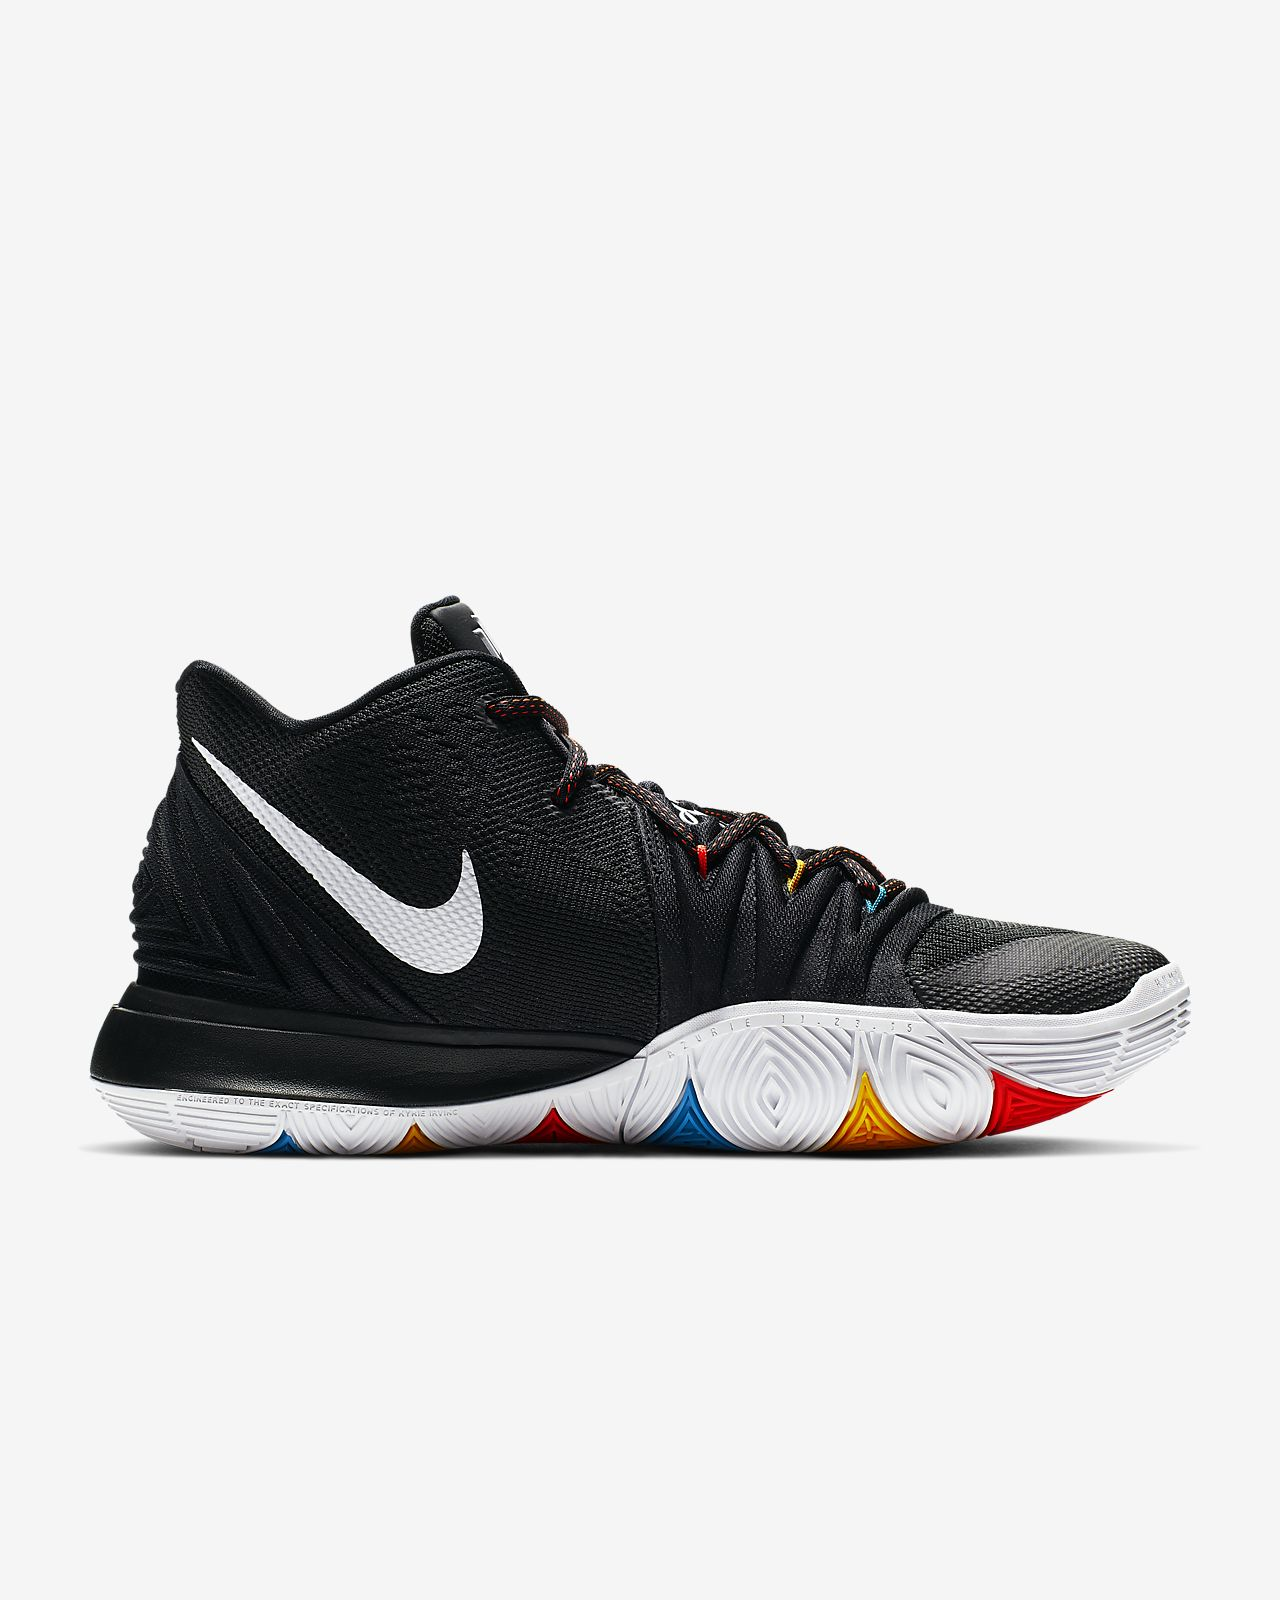 separation shoes 6676e e274a Low Resolution Chaussure Kyrie 5 Chaussure Kyrie 5